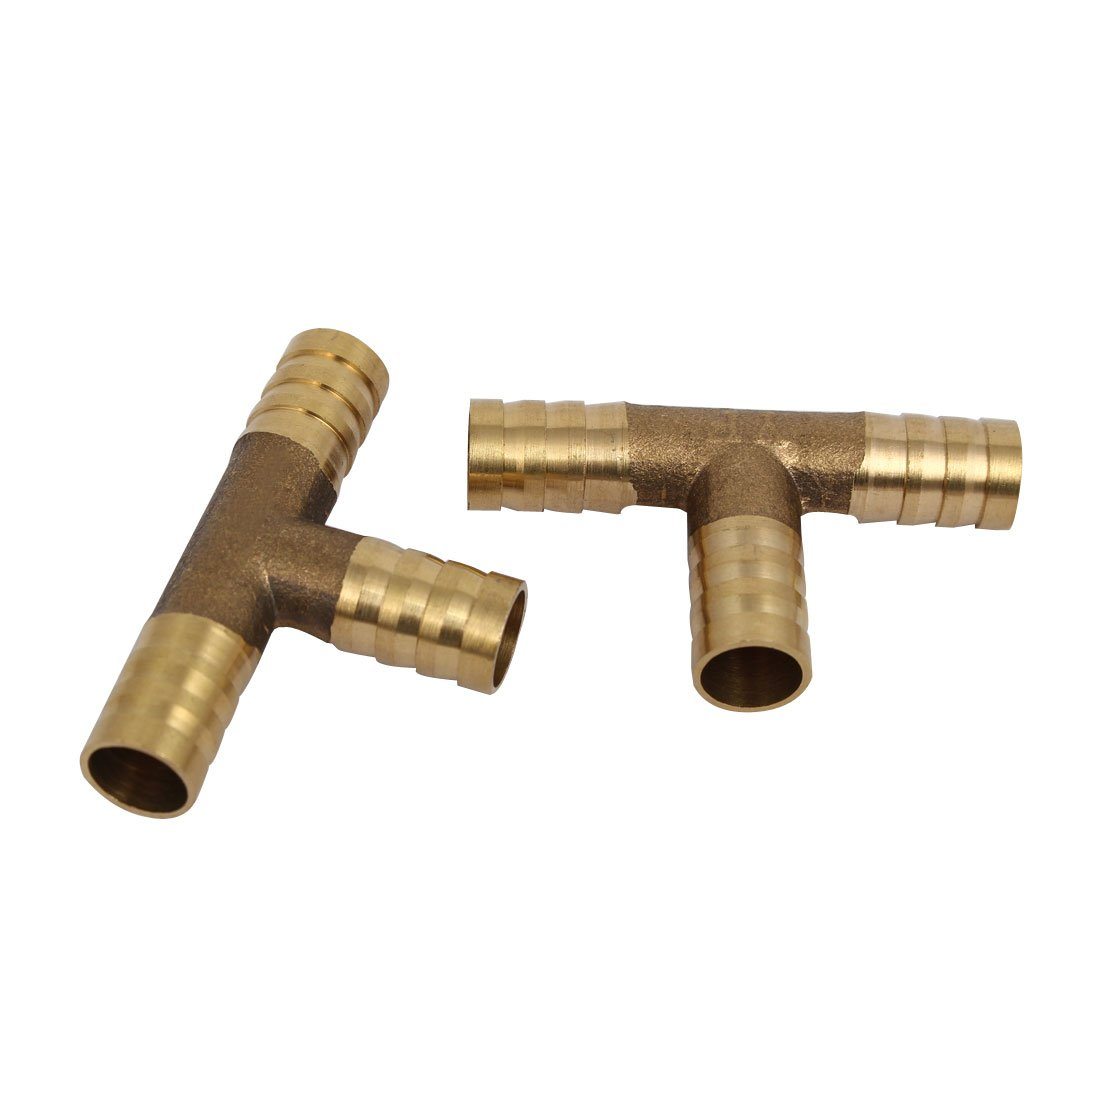 10mm to 6mm Barb Brass Hose Fitting 90 Degree Elbow Pipe Coupler Tubing Adapter